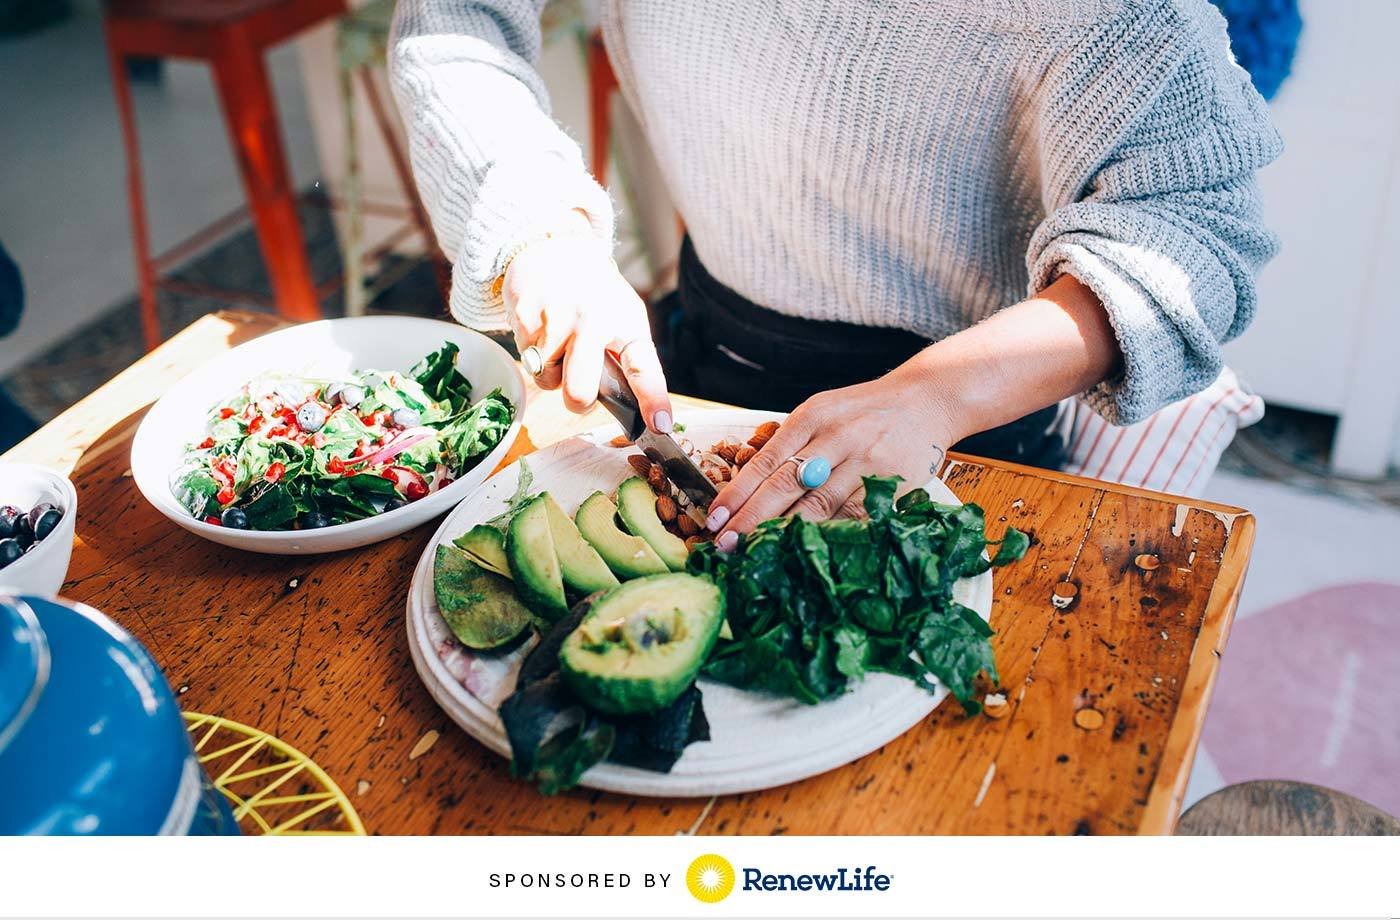 Yep, Your Microbiome Needs A Good Spring Cleaning Too—Here's How What You're Eating Can Help